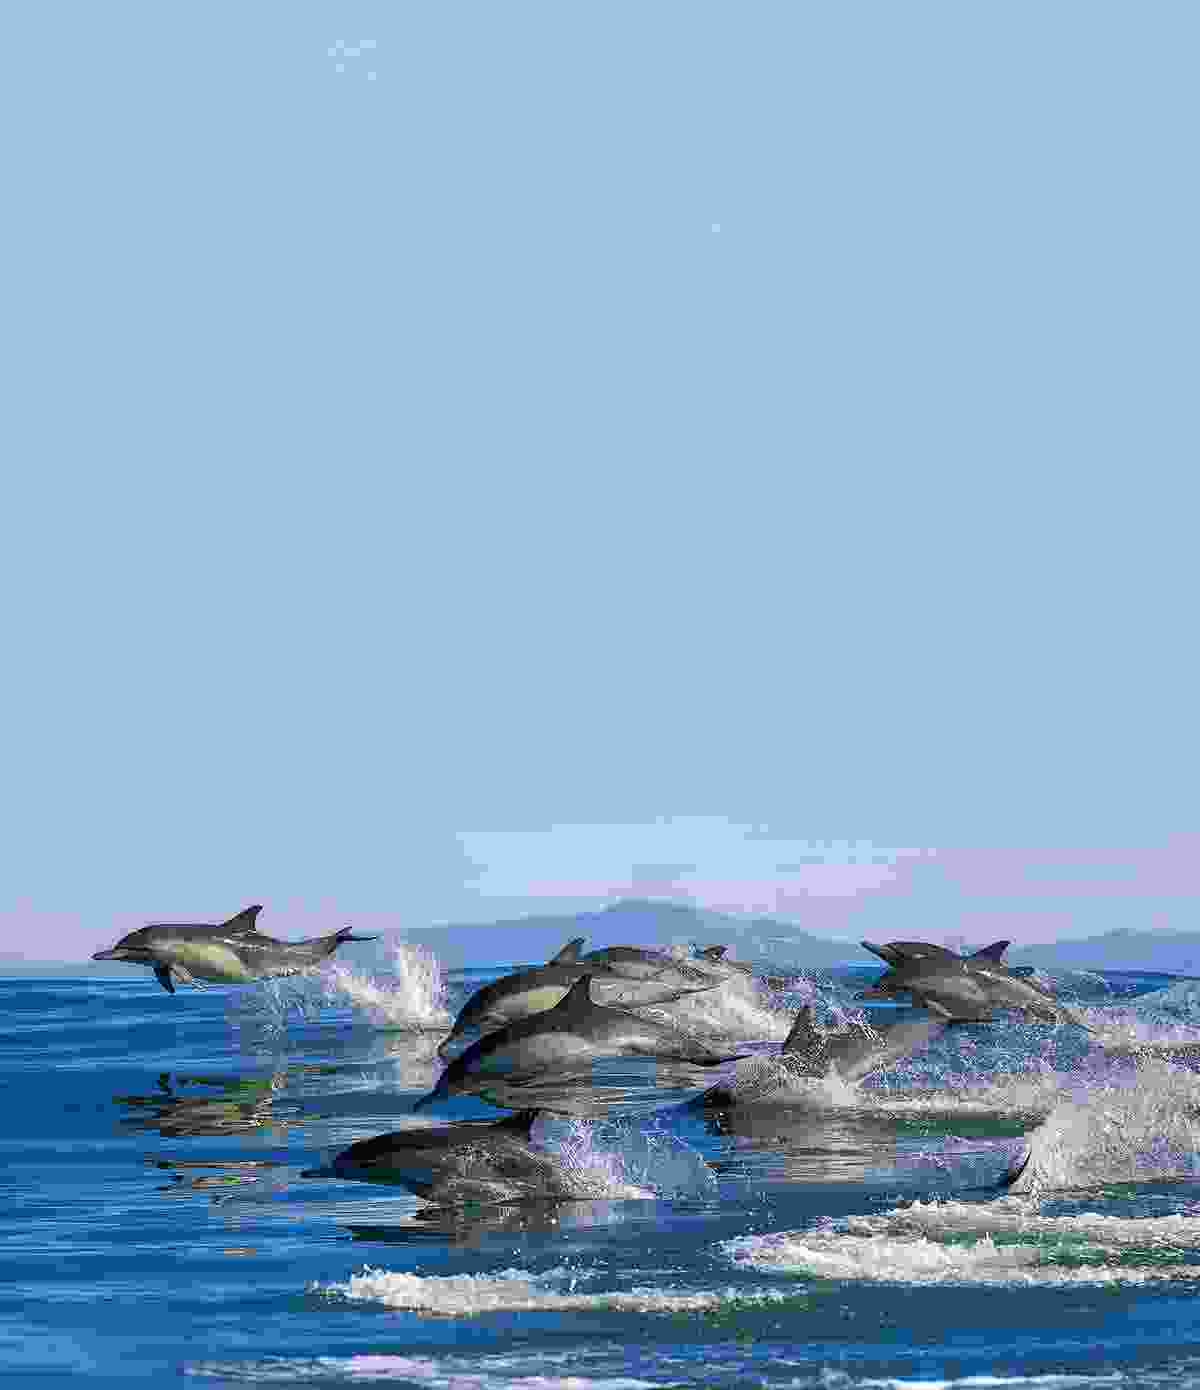 Dolphins swimming in the wild (Shutterstock)